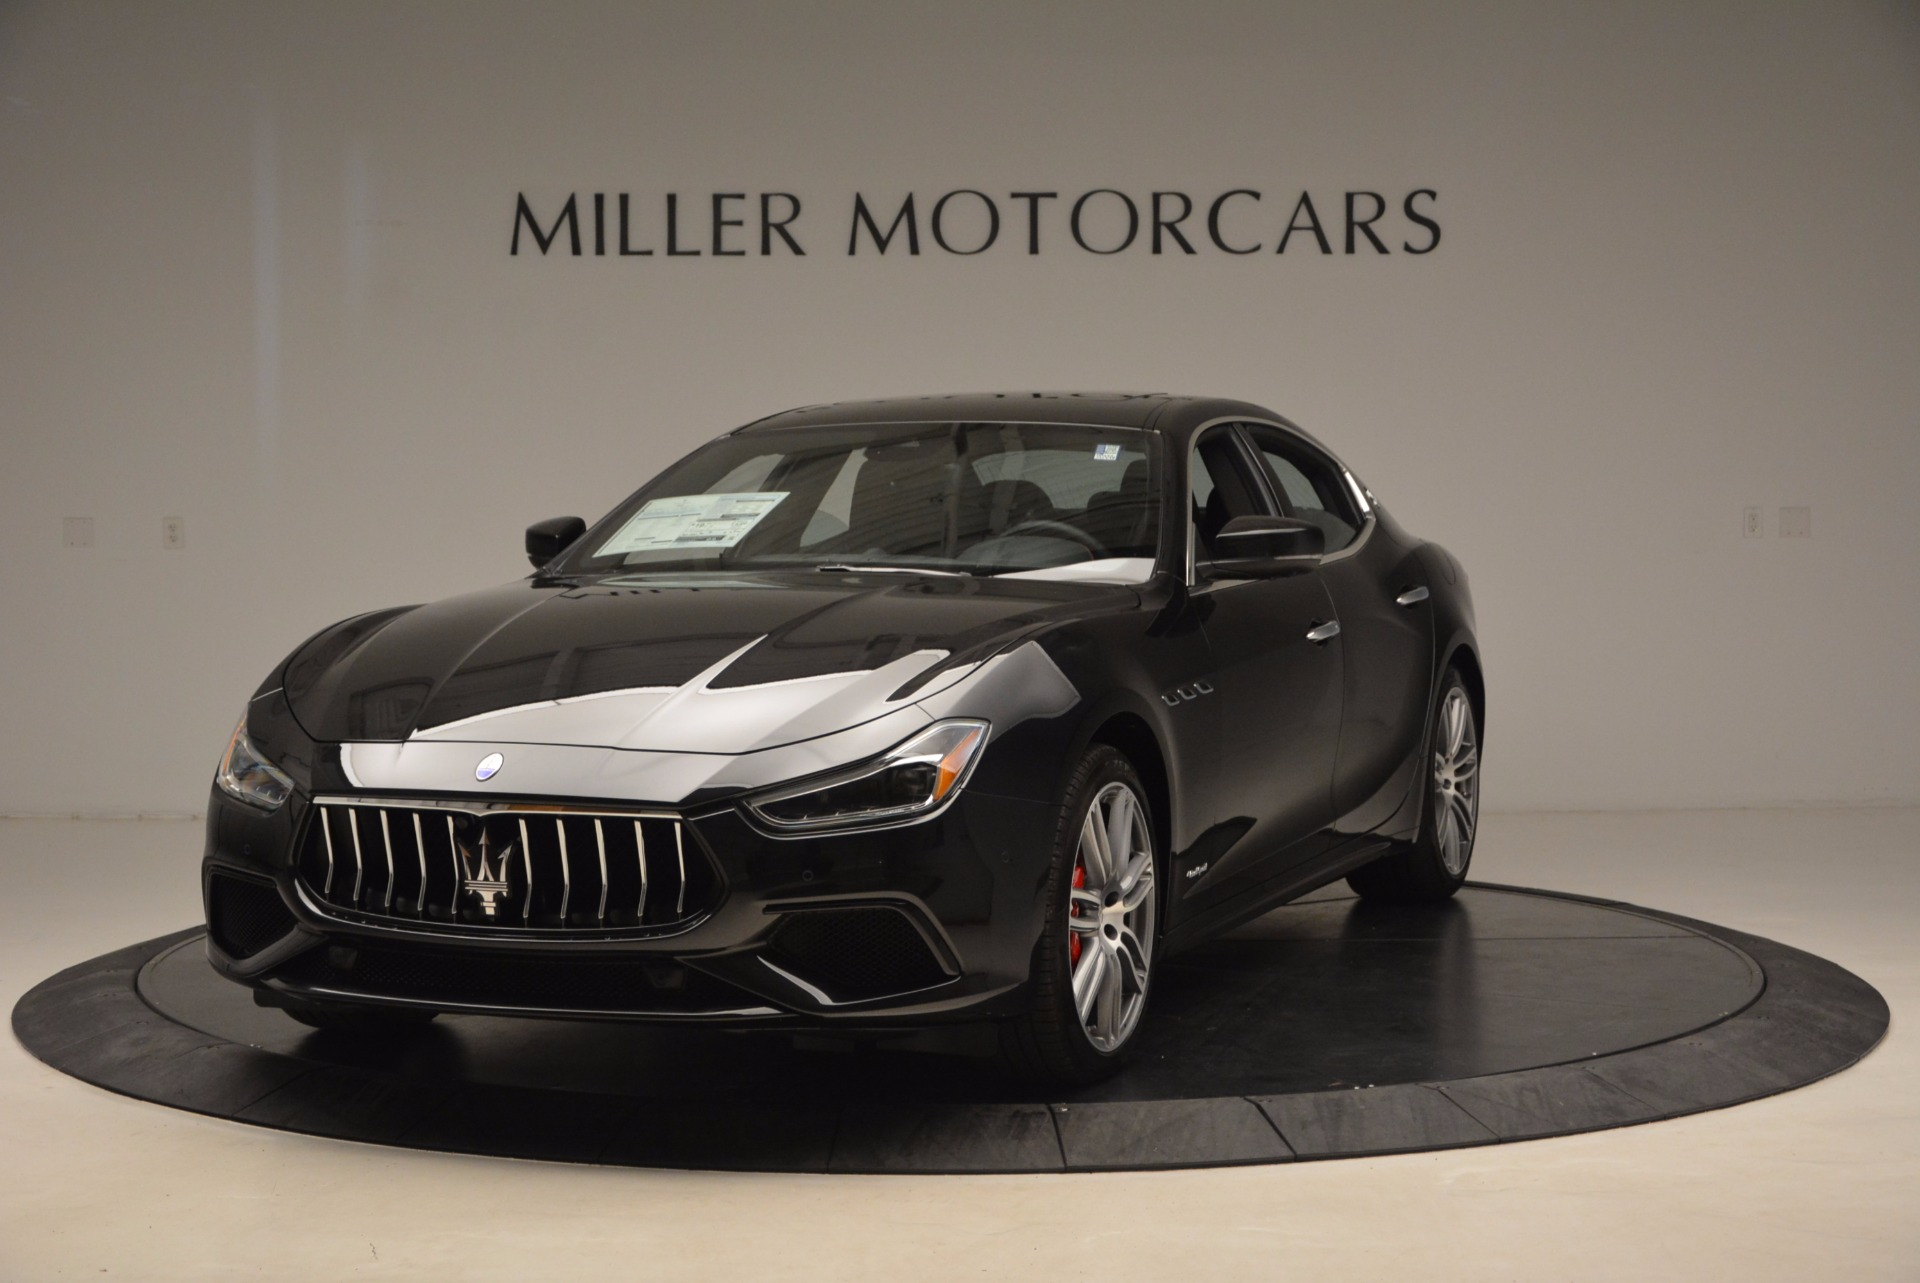 New 2018 Maserati Ghibli S Q4 Gransport For Sale In Greenwich, CT. Alfa Romeo of Greenwich, W541